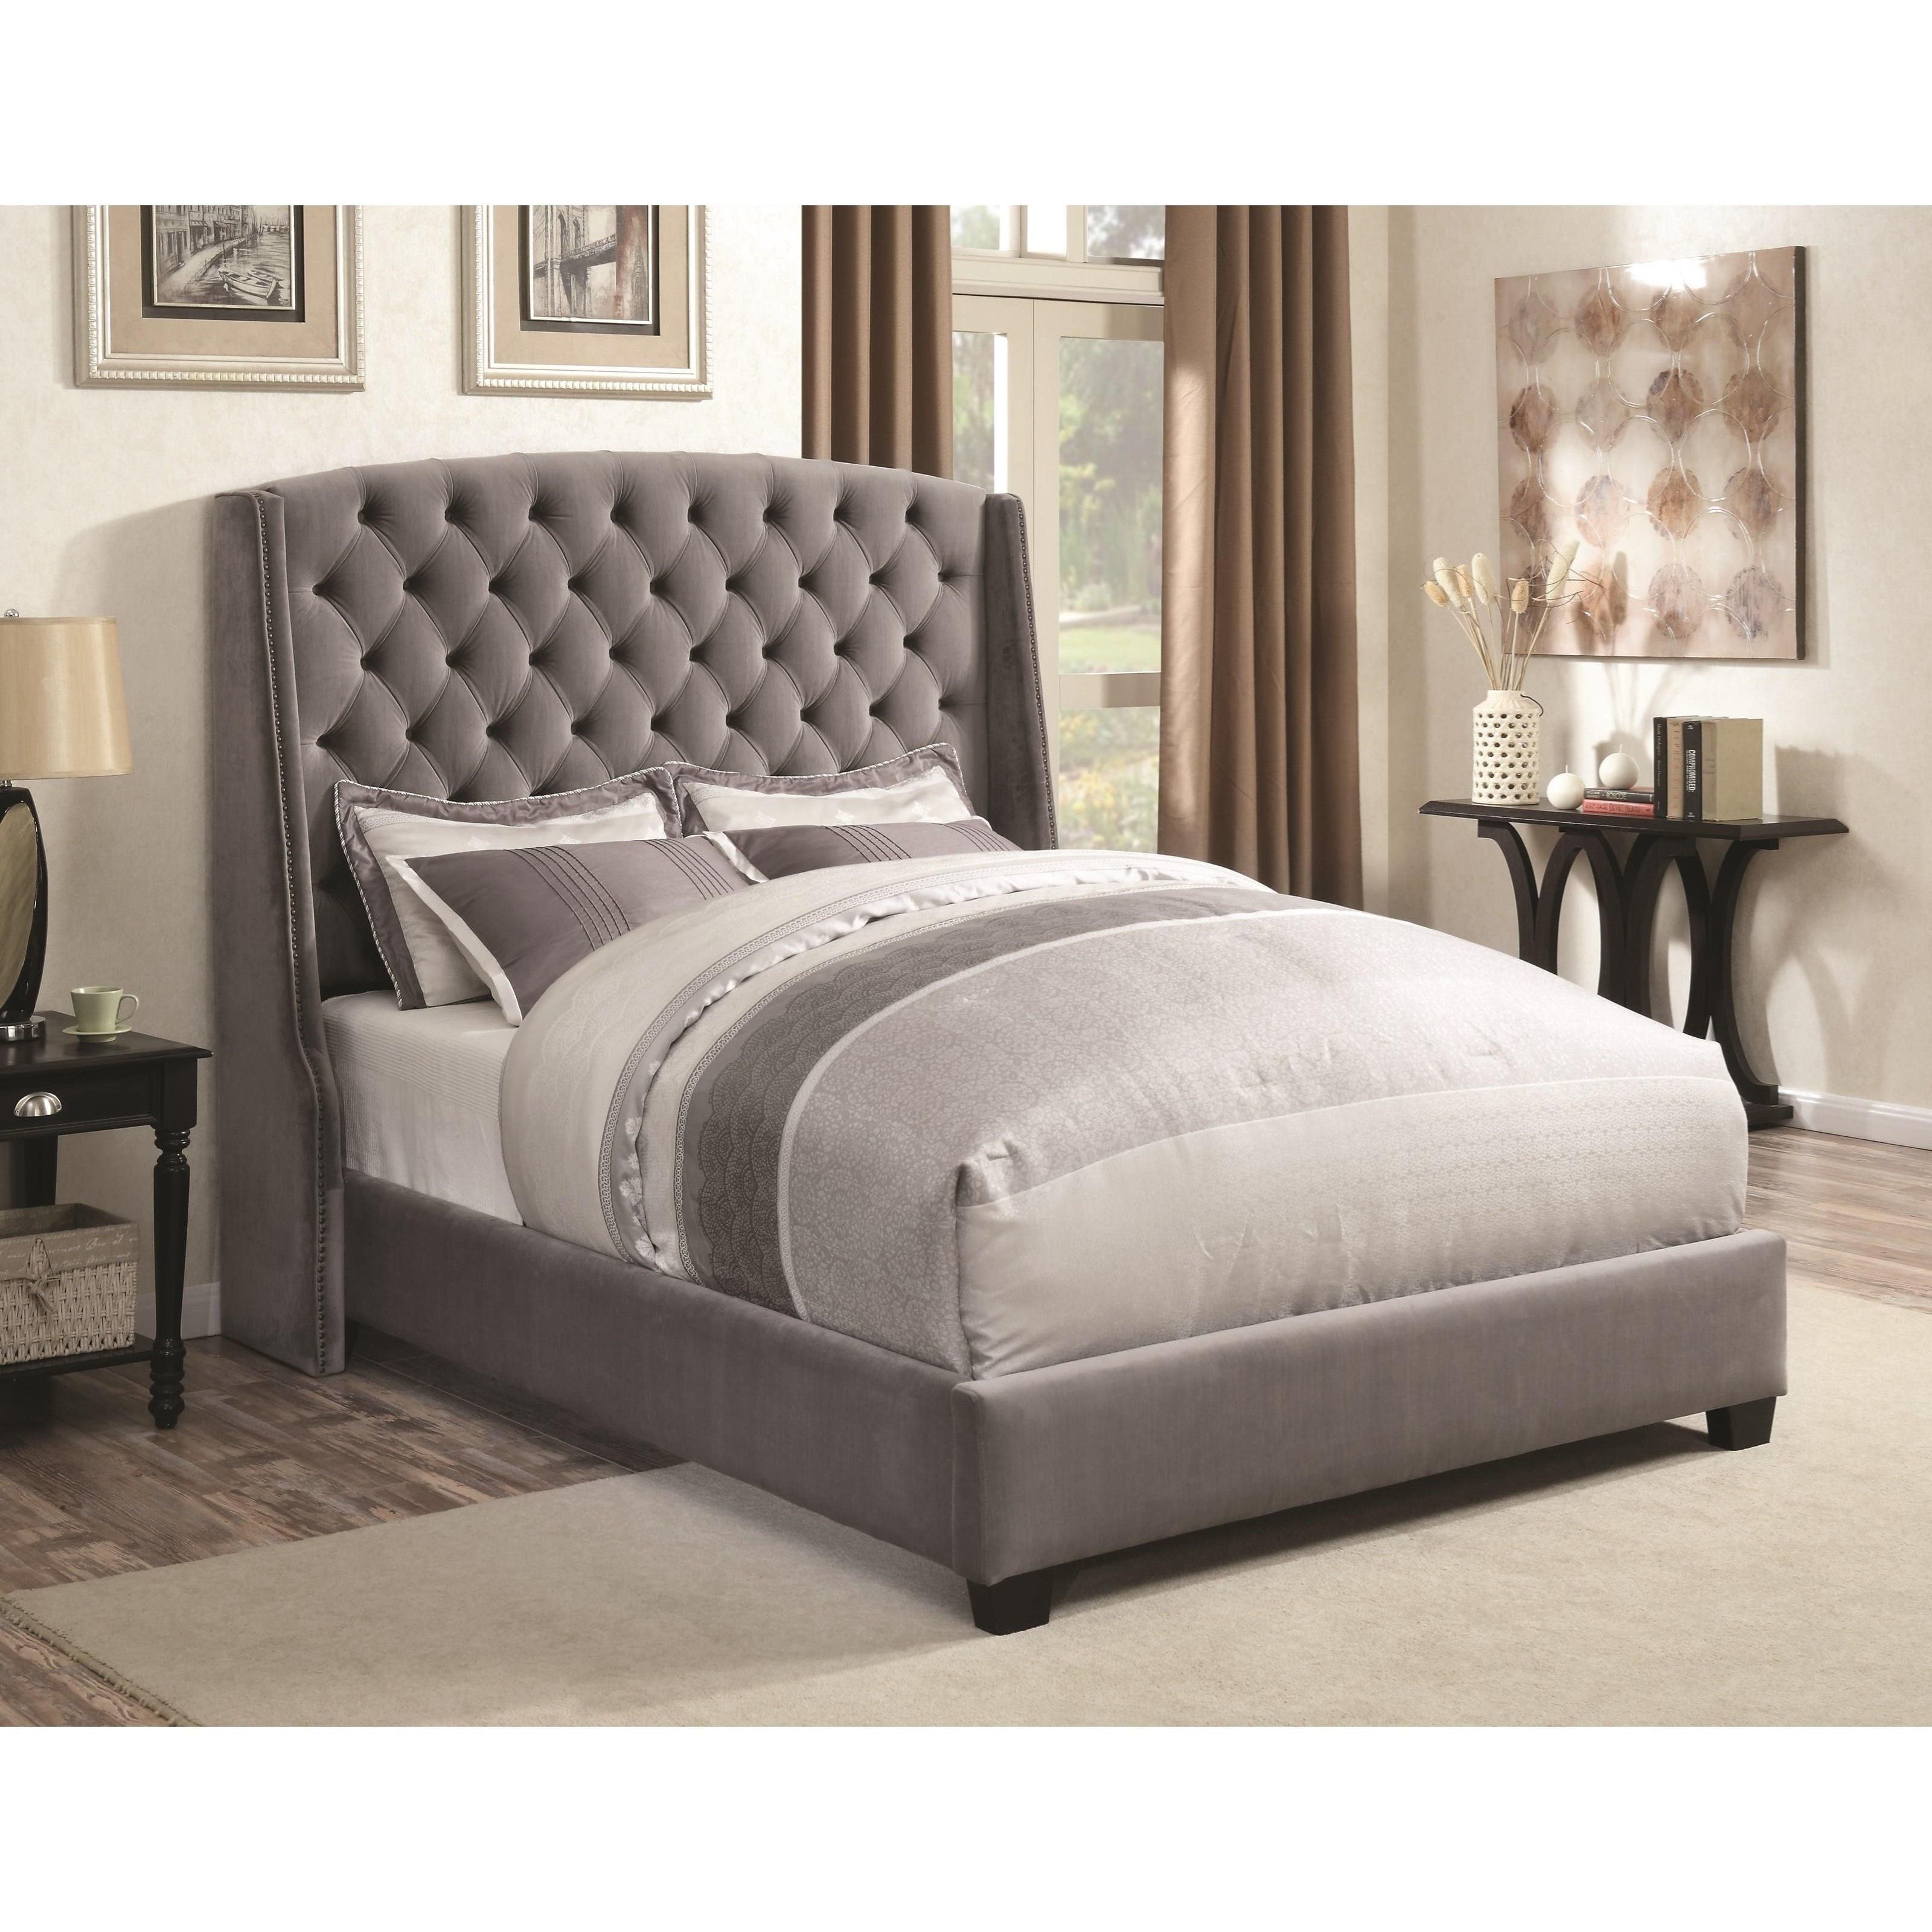 Coaster Upholstered Beds 300515q Pissarro Wingback